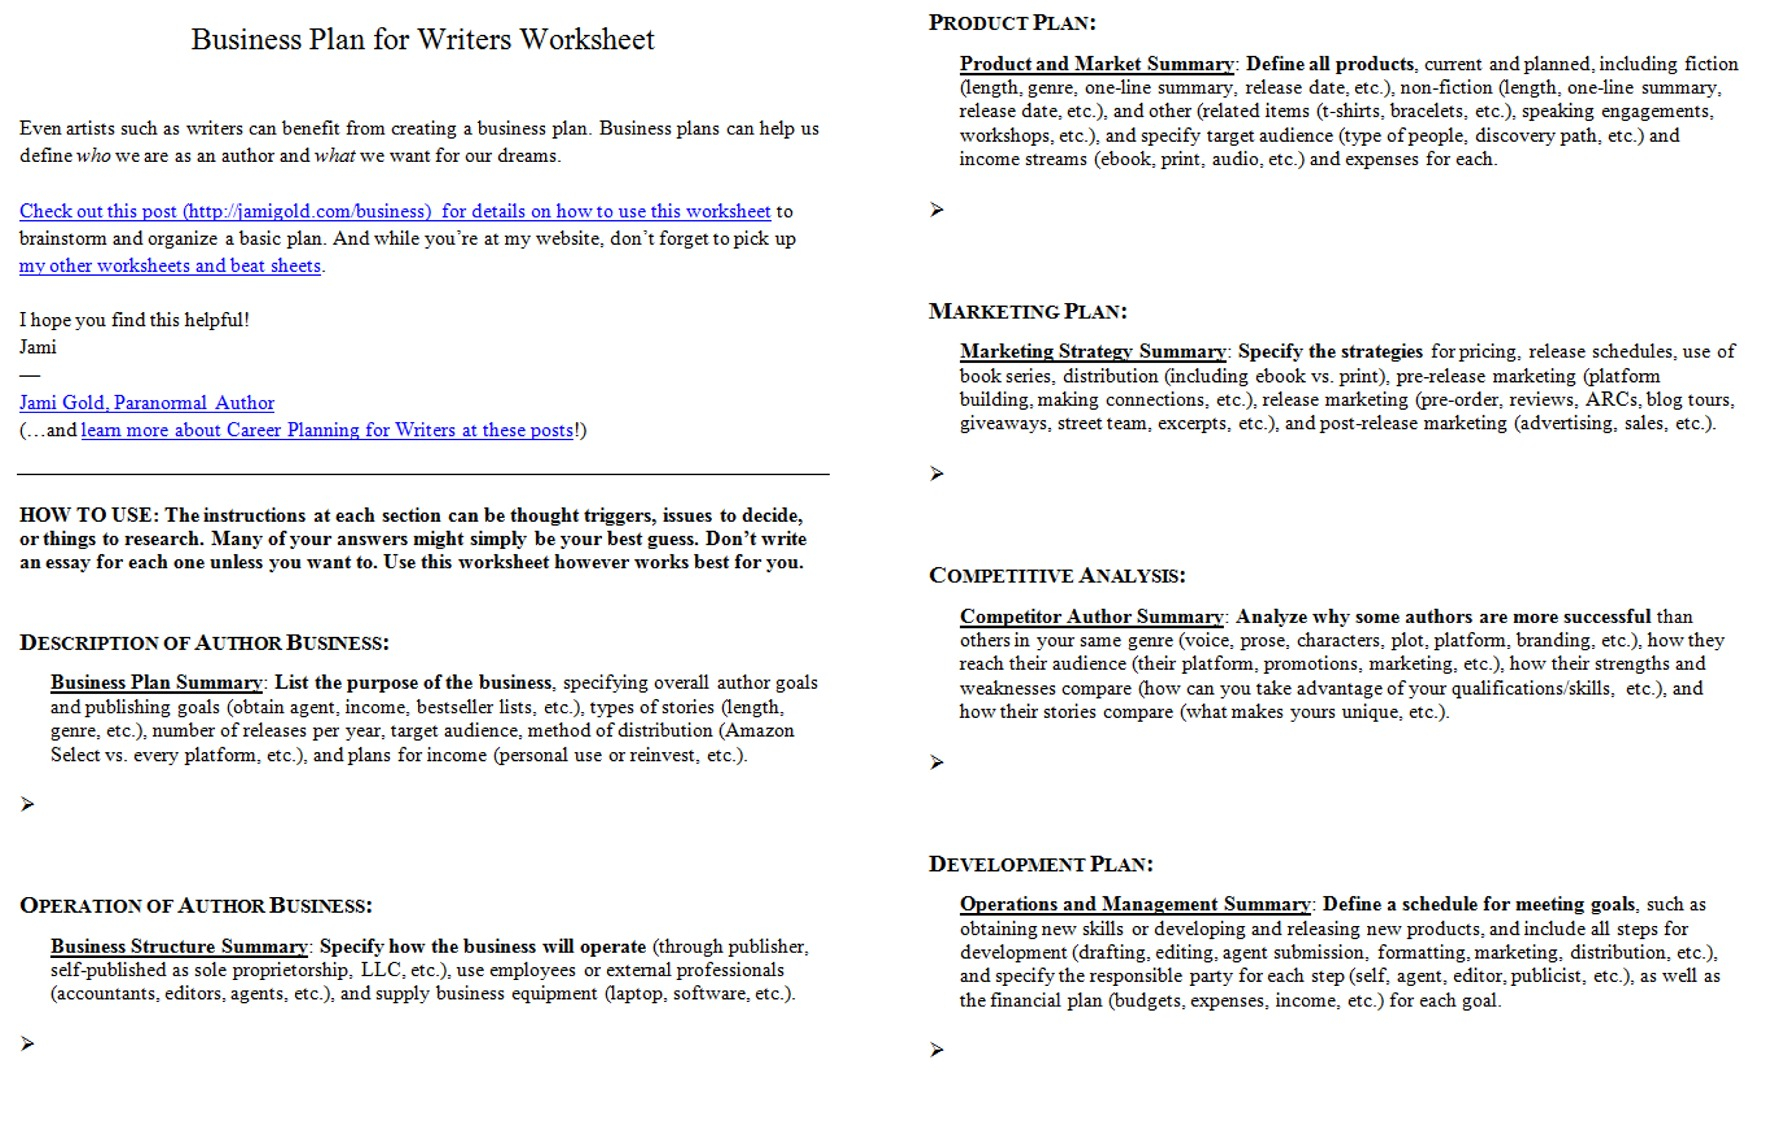 Proatmealus  Ravishing Worksheets For Writers  Jami Gold Paranormal Author With Lovely Screen Shot Of Both Pages Of The Business Plan For Writers Worksheet With Charming Penny Worksheets Also K Math Worksheets In Addition Unit Fraction Worksheets And Solve Inequalities Worksheet As Well As Reading Comprehension Worksheets Th Grade Additionally Simple Interest Word Problems Worksheet From Jamigoldcom With Proatmealus  Lovely Worksheets For Writers  Jami Gold Paranormal Author With Charming Screen Shot Of Both Pages Of The Business Plan For Writers Worksheet And Ravishing Penny Worksheets Also K Math Worksheets In Addition Unit Fraction Worksheets From Jamigoldcom